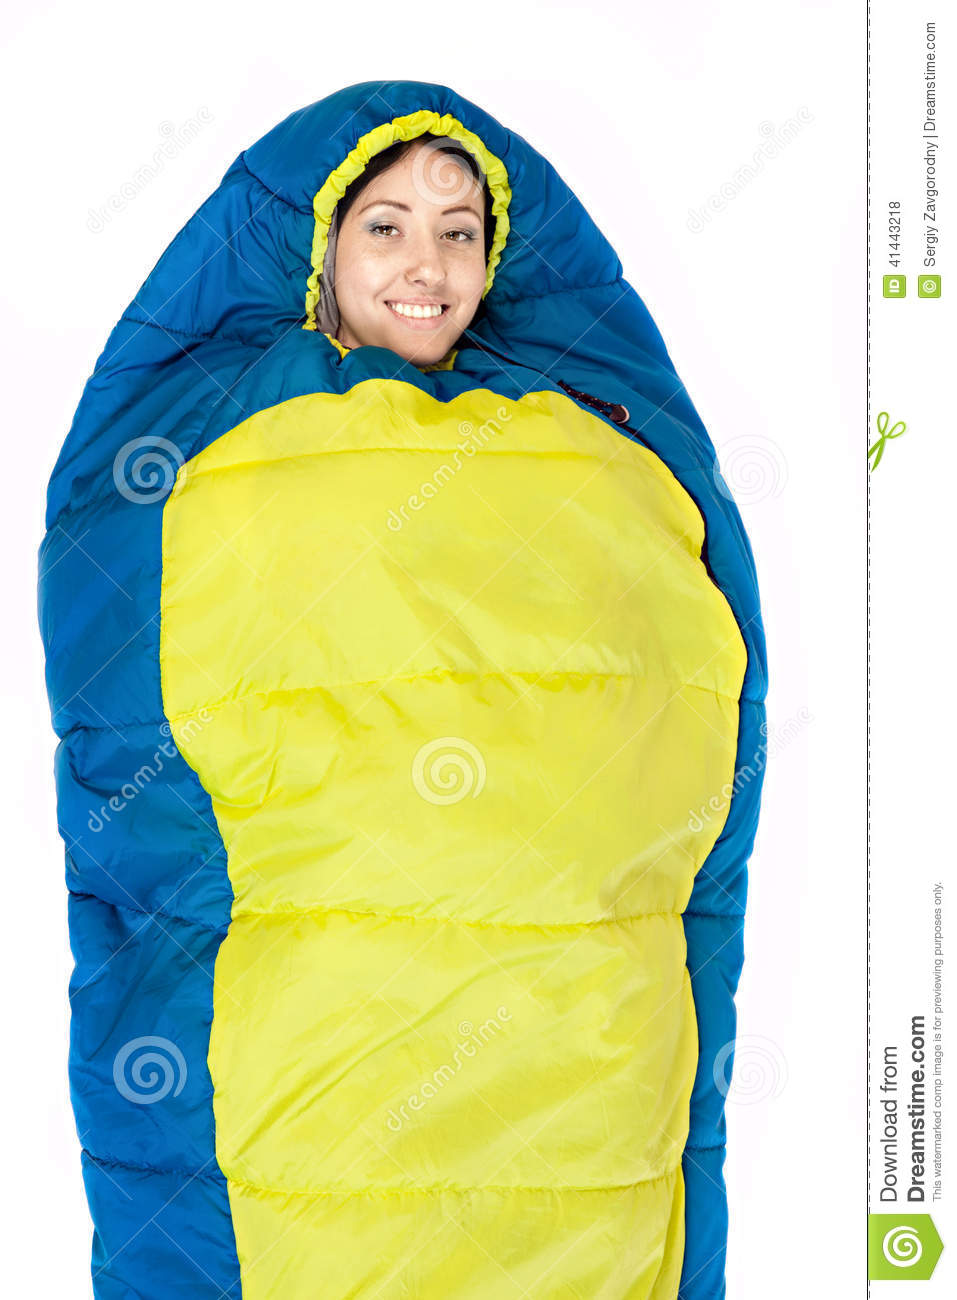 Clipart Sleeping Bag